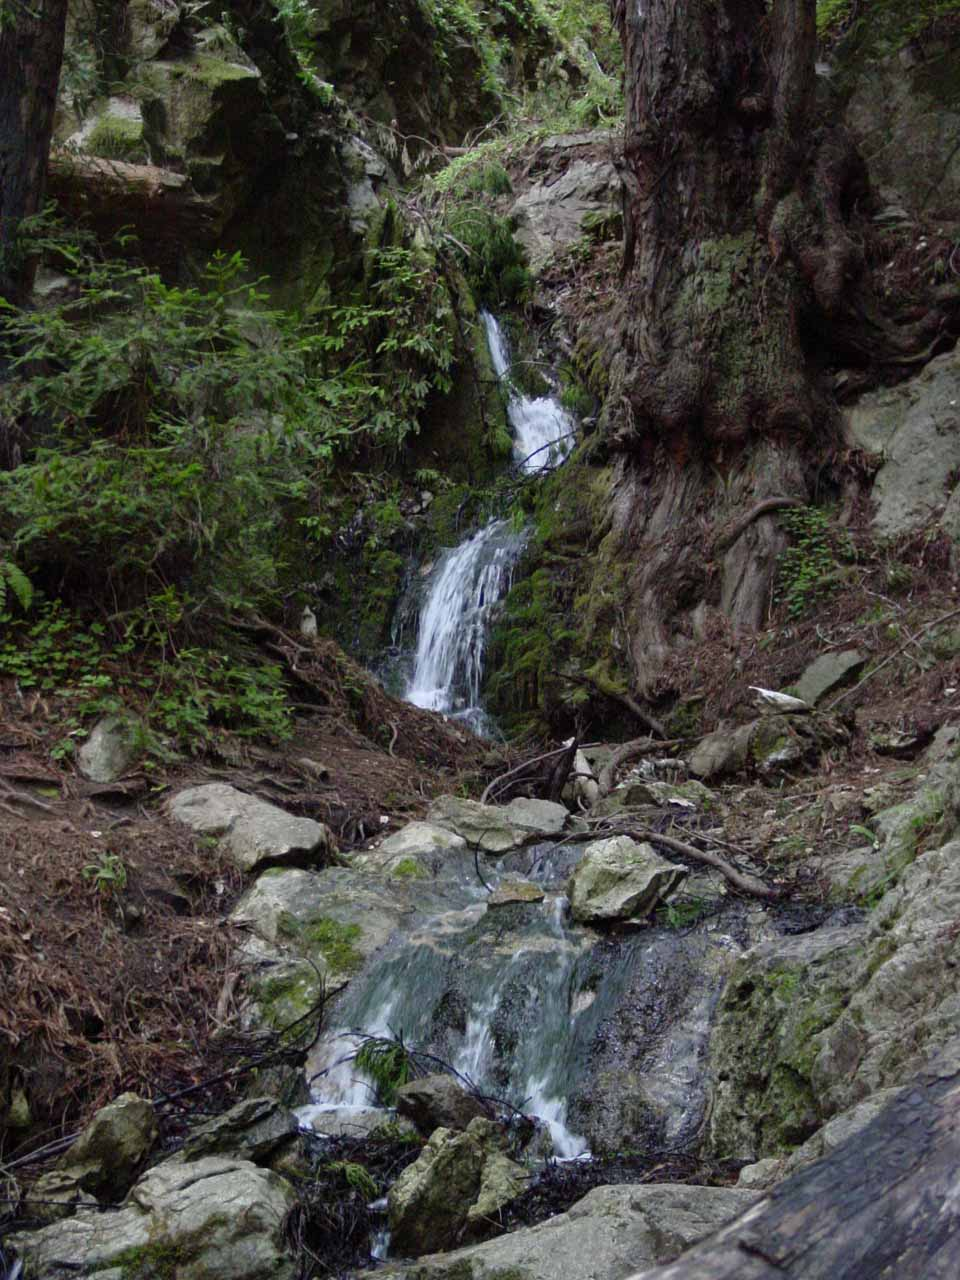 Canyon Falls as seen back in 2003